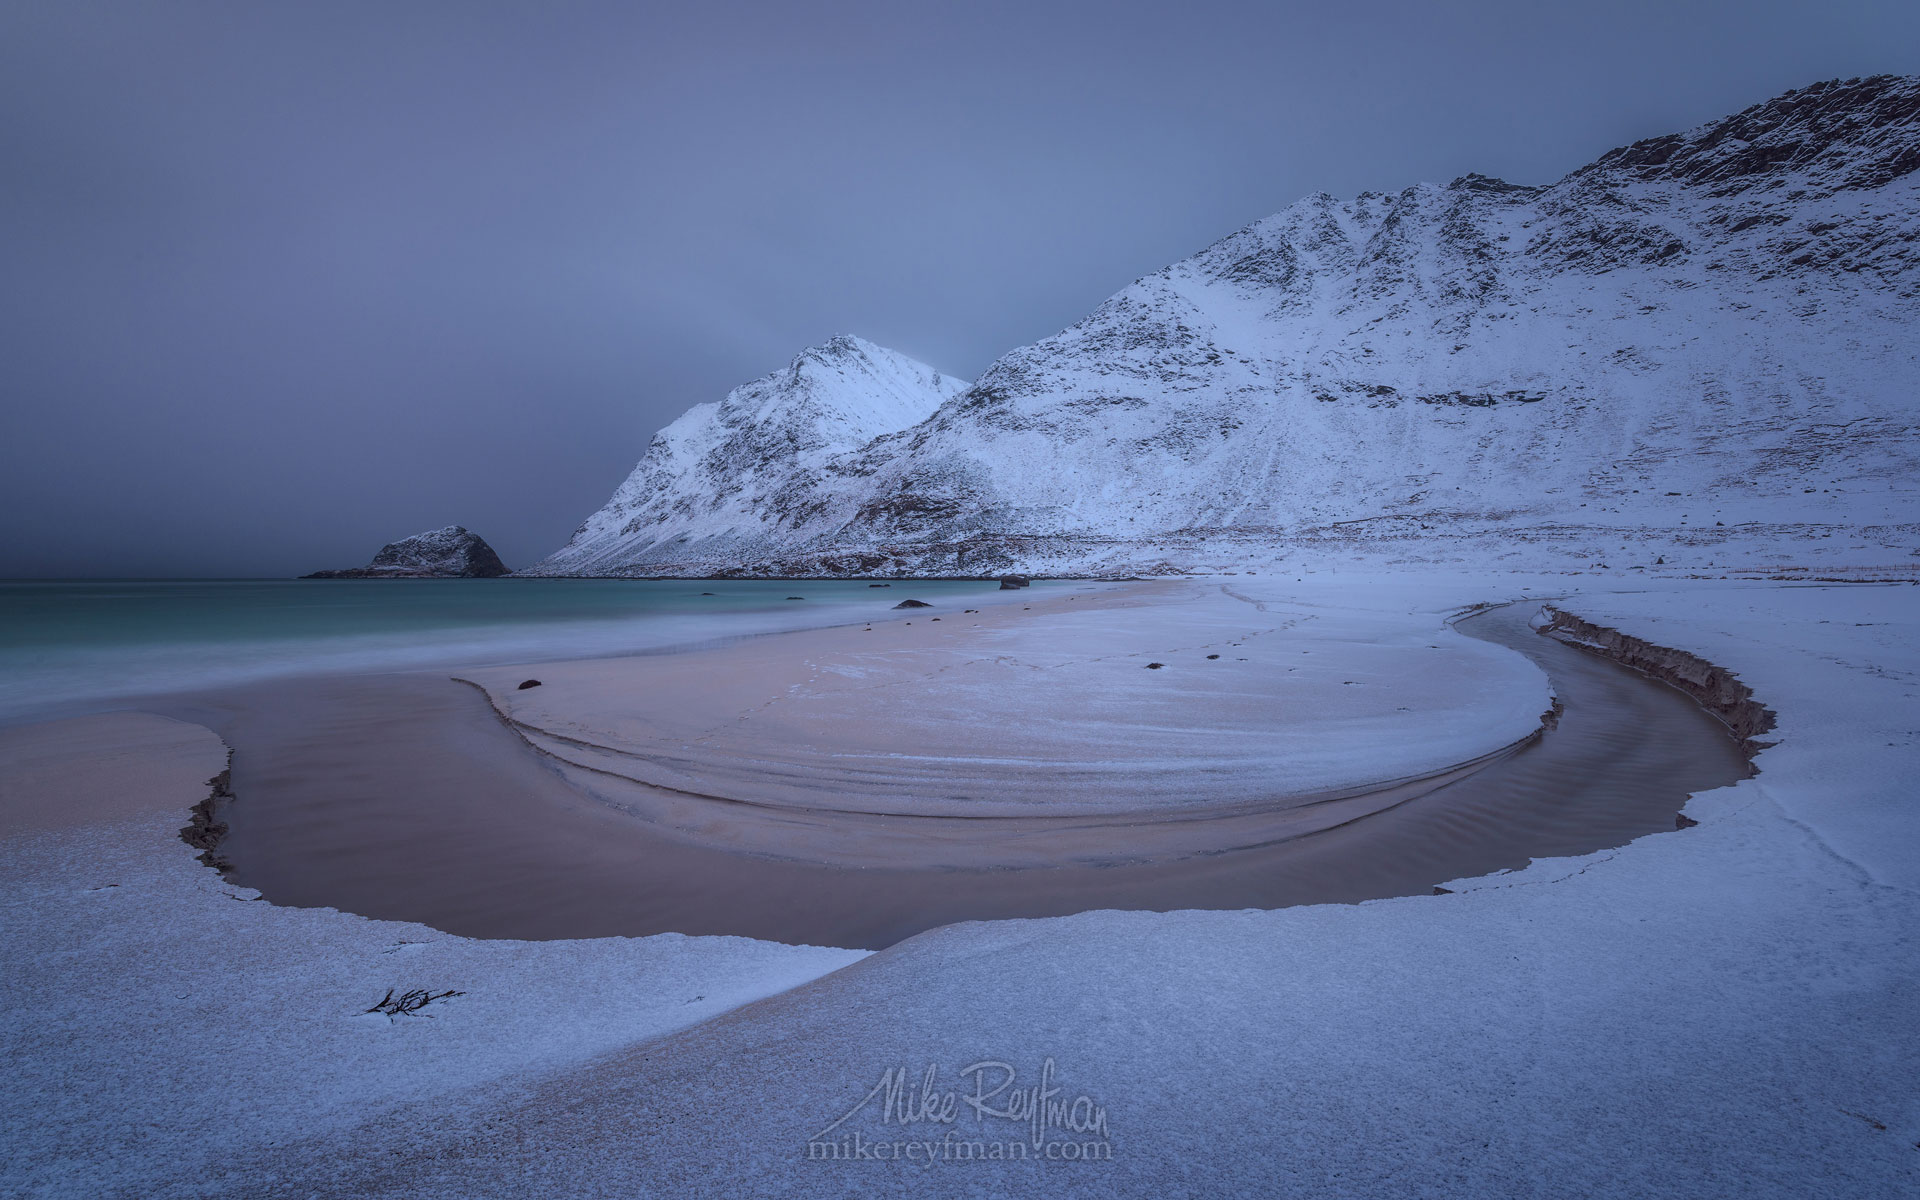 Haukalnd beach in winter. Vestvagoy, Lofoten Islands, Norway LF-MRD1E1154 - Lofoten Archipelago in Winter, Arctic Norway - Mike Reyfman Photography